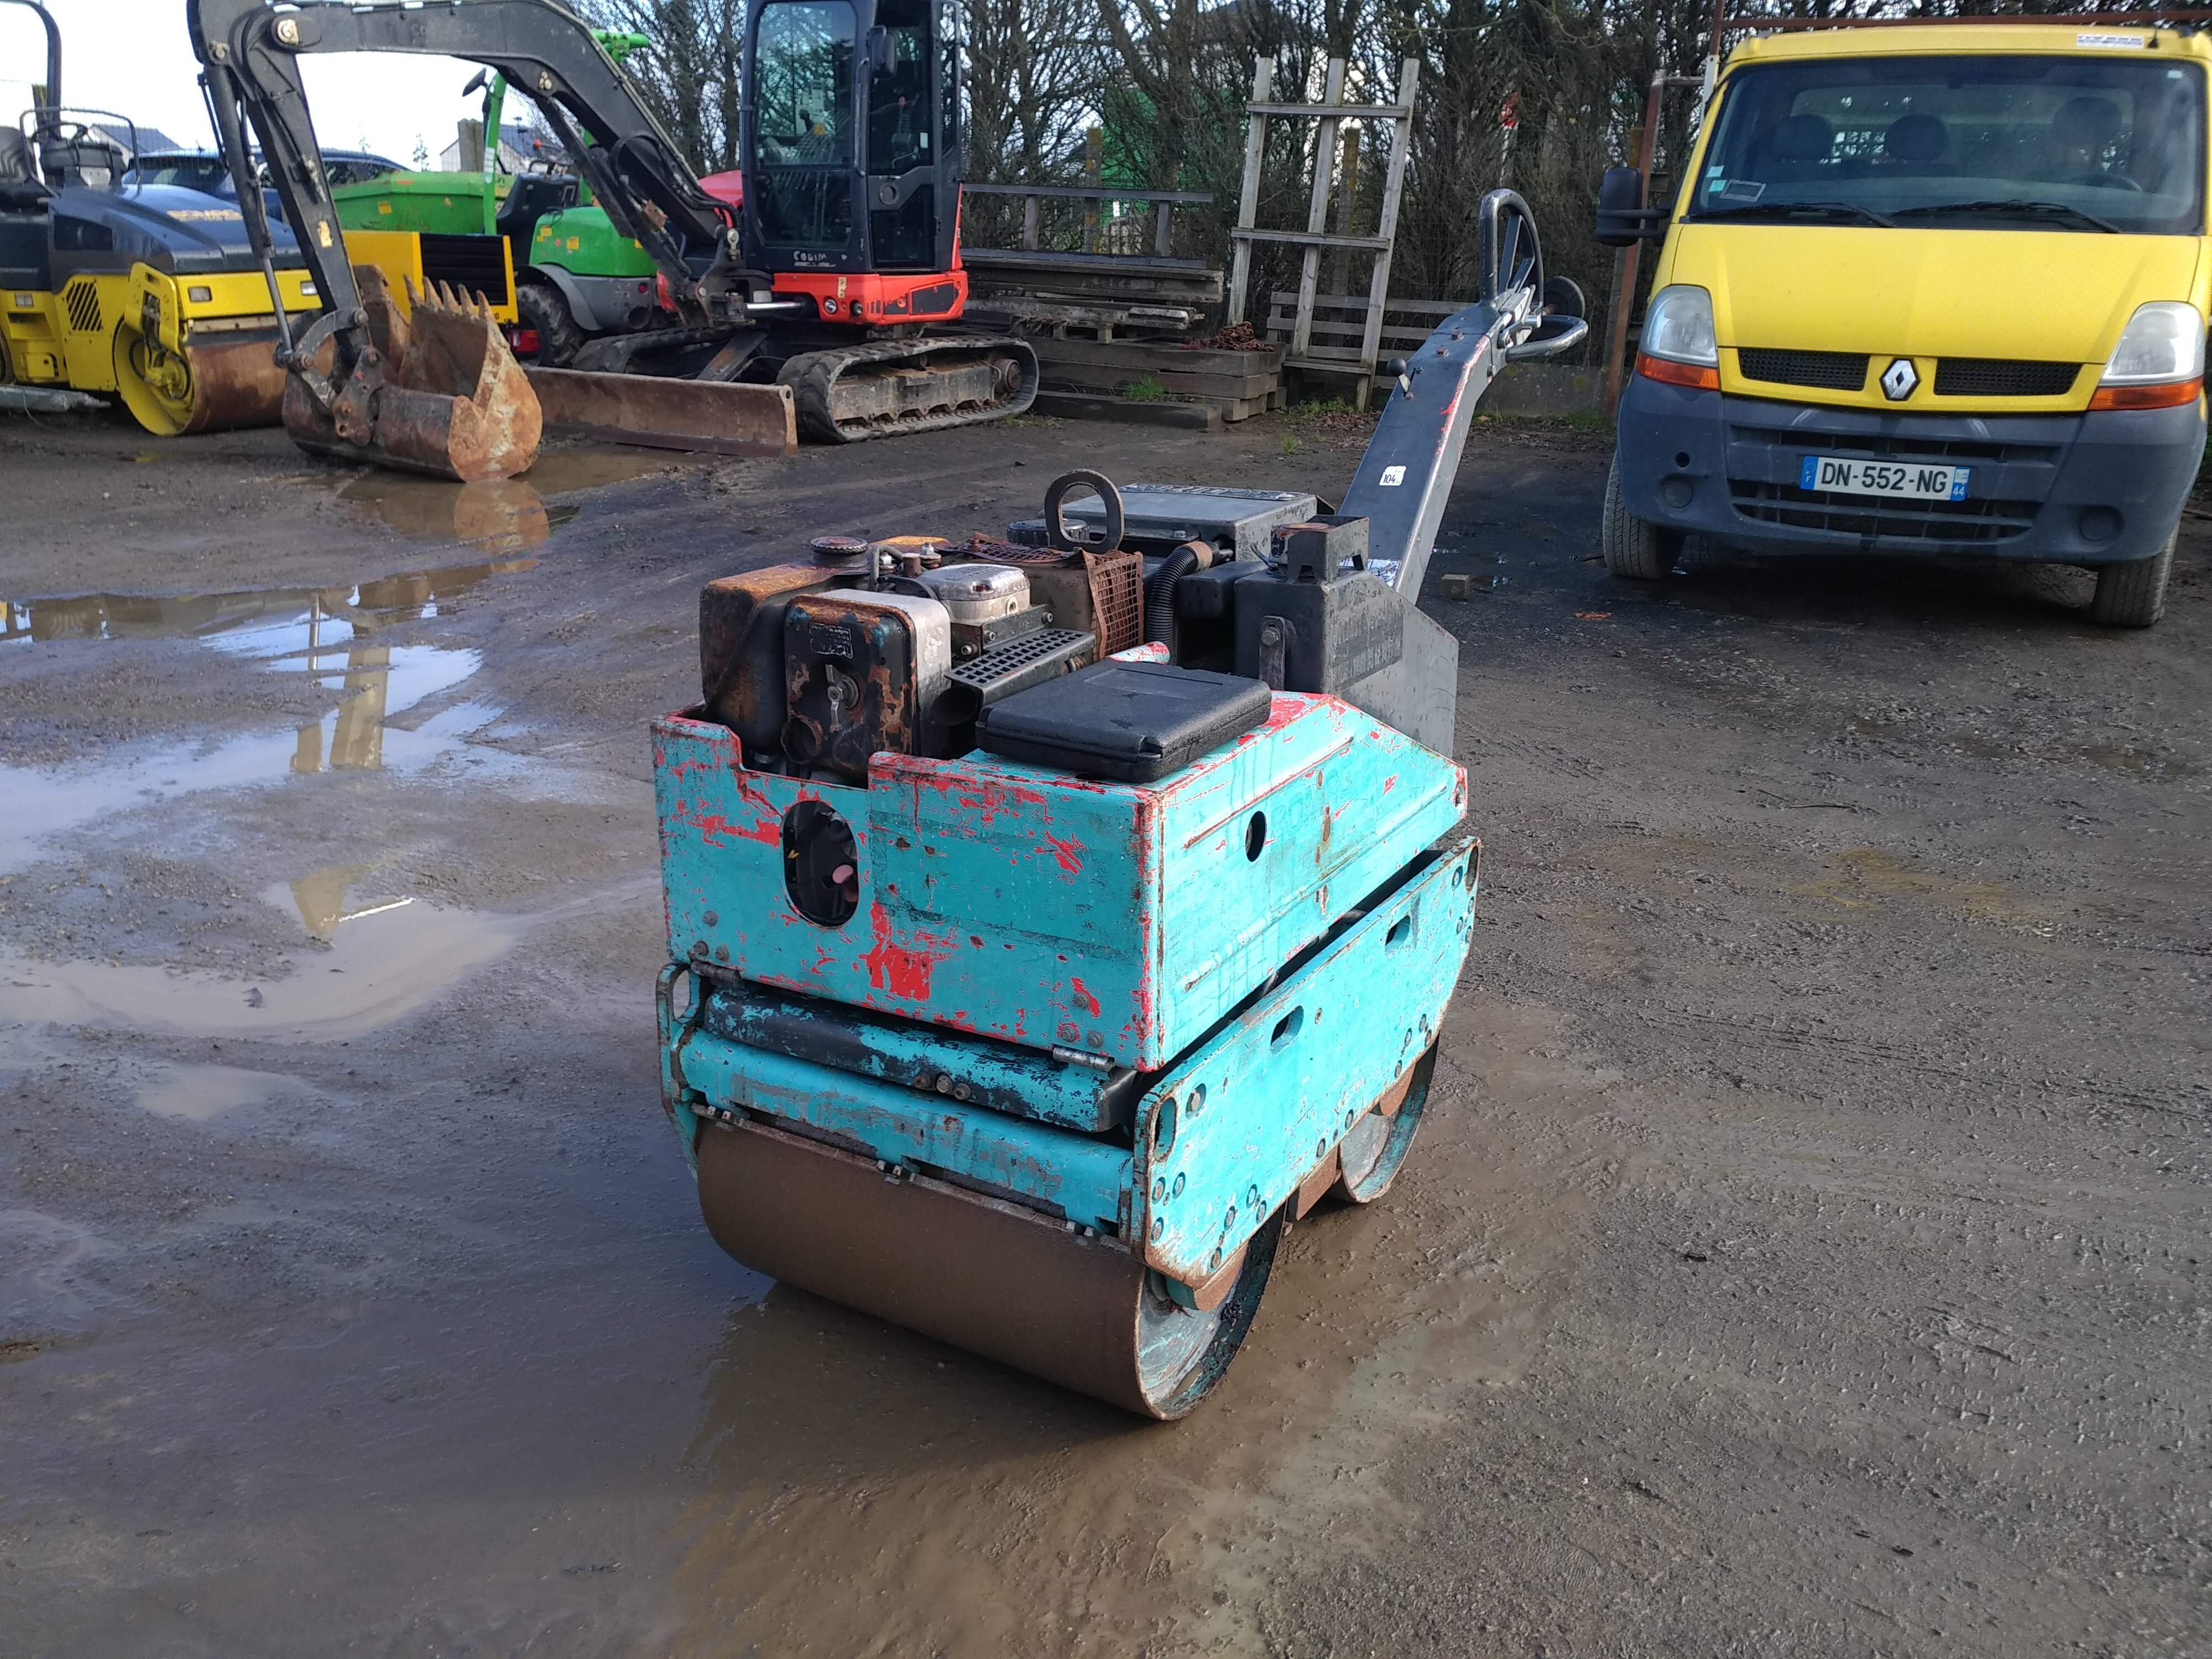 bw62 h bomag rouleau